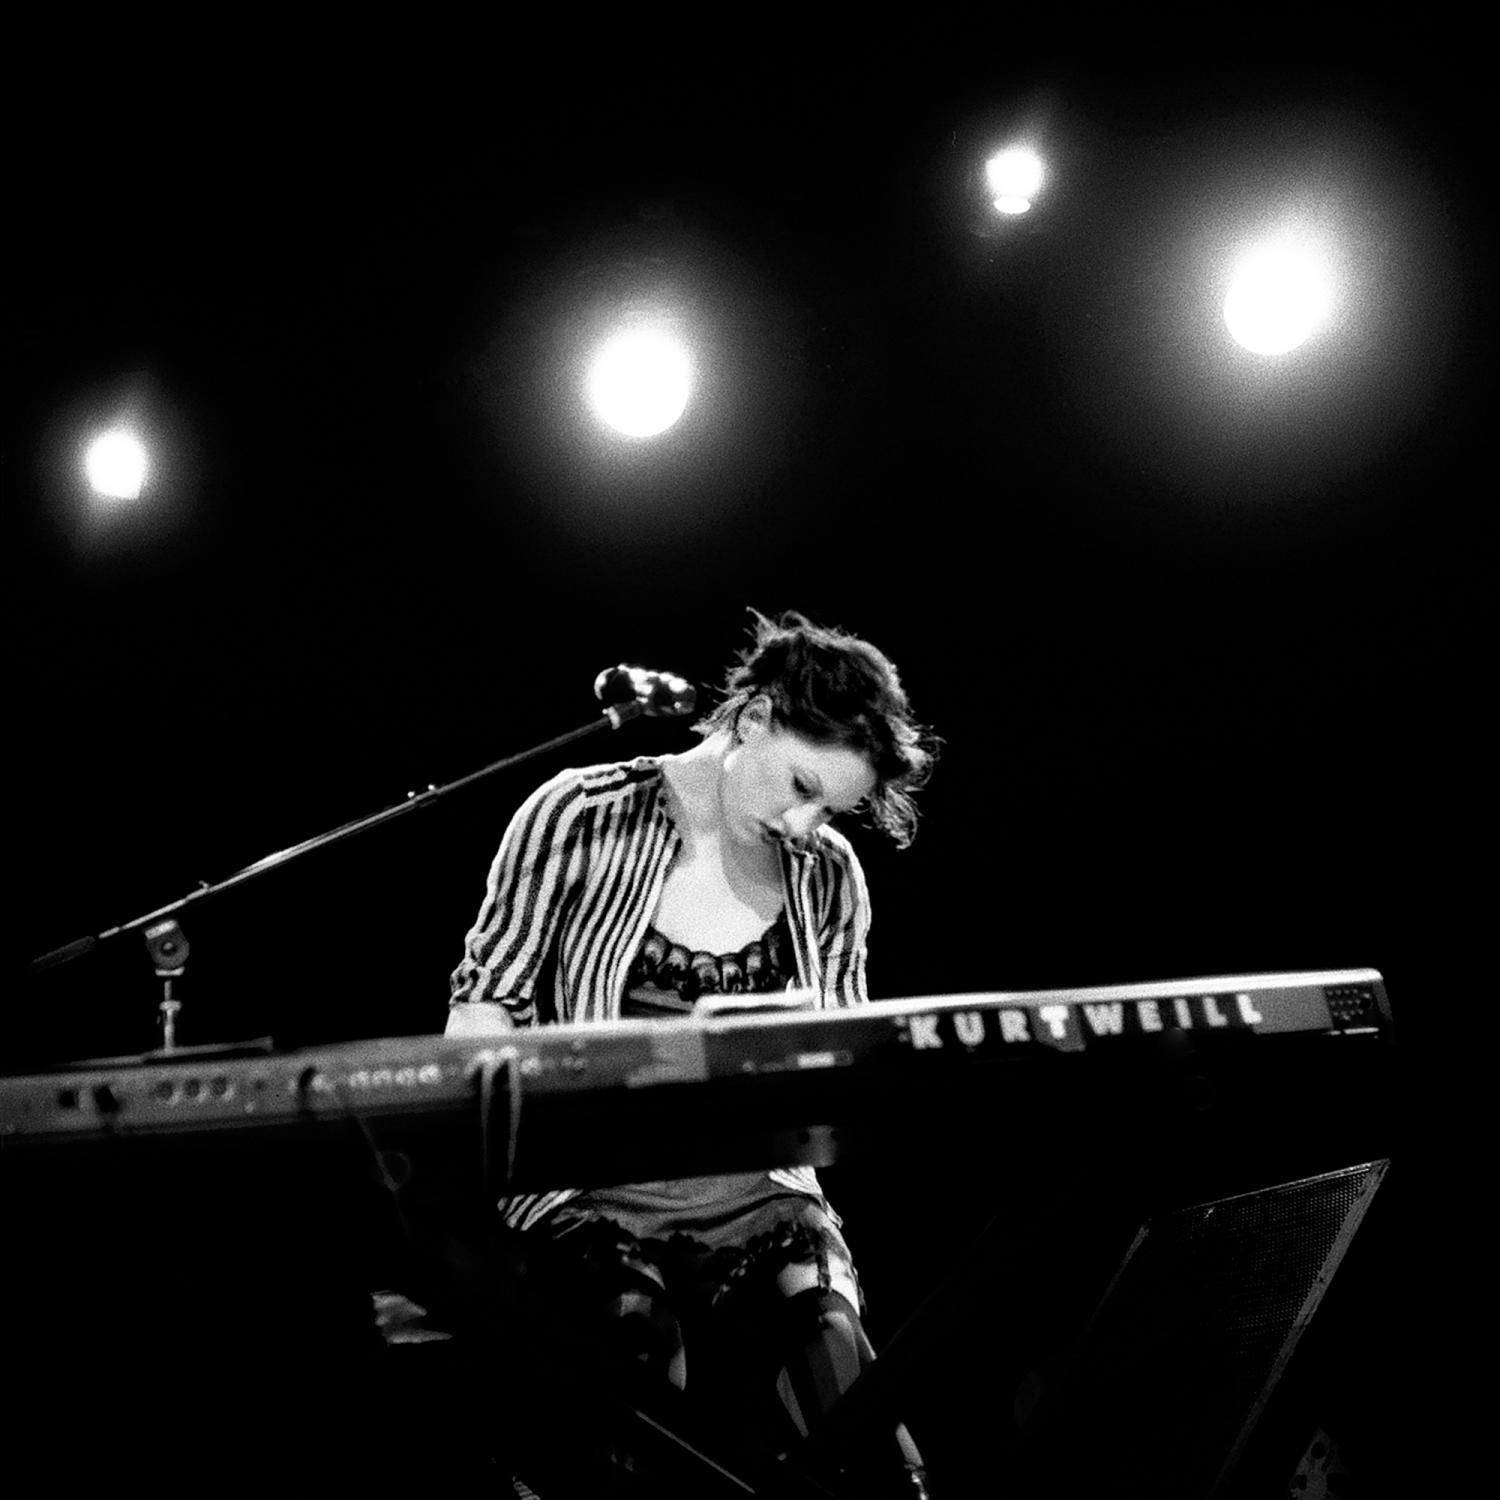 Amanda Palmer performs her music at The Paradise rock club in Boston Massachusetts. Commissioned by the artist's management.